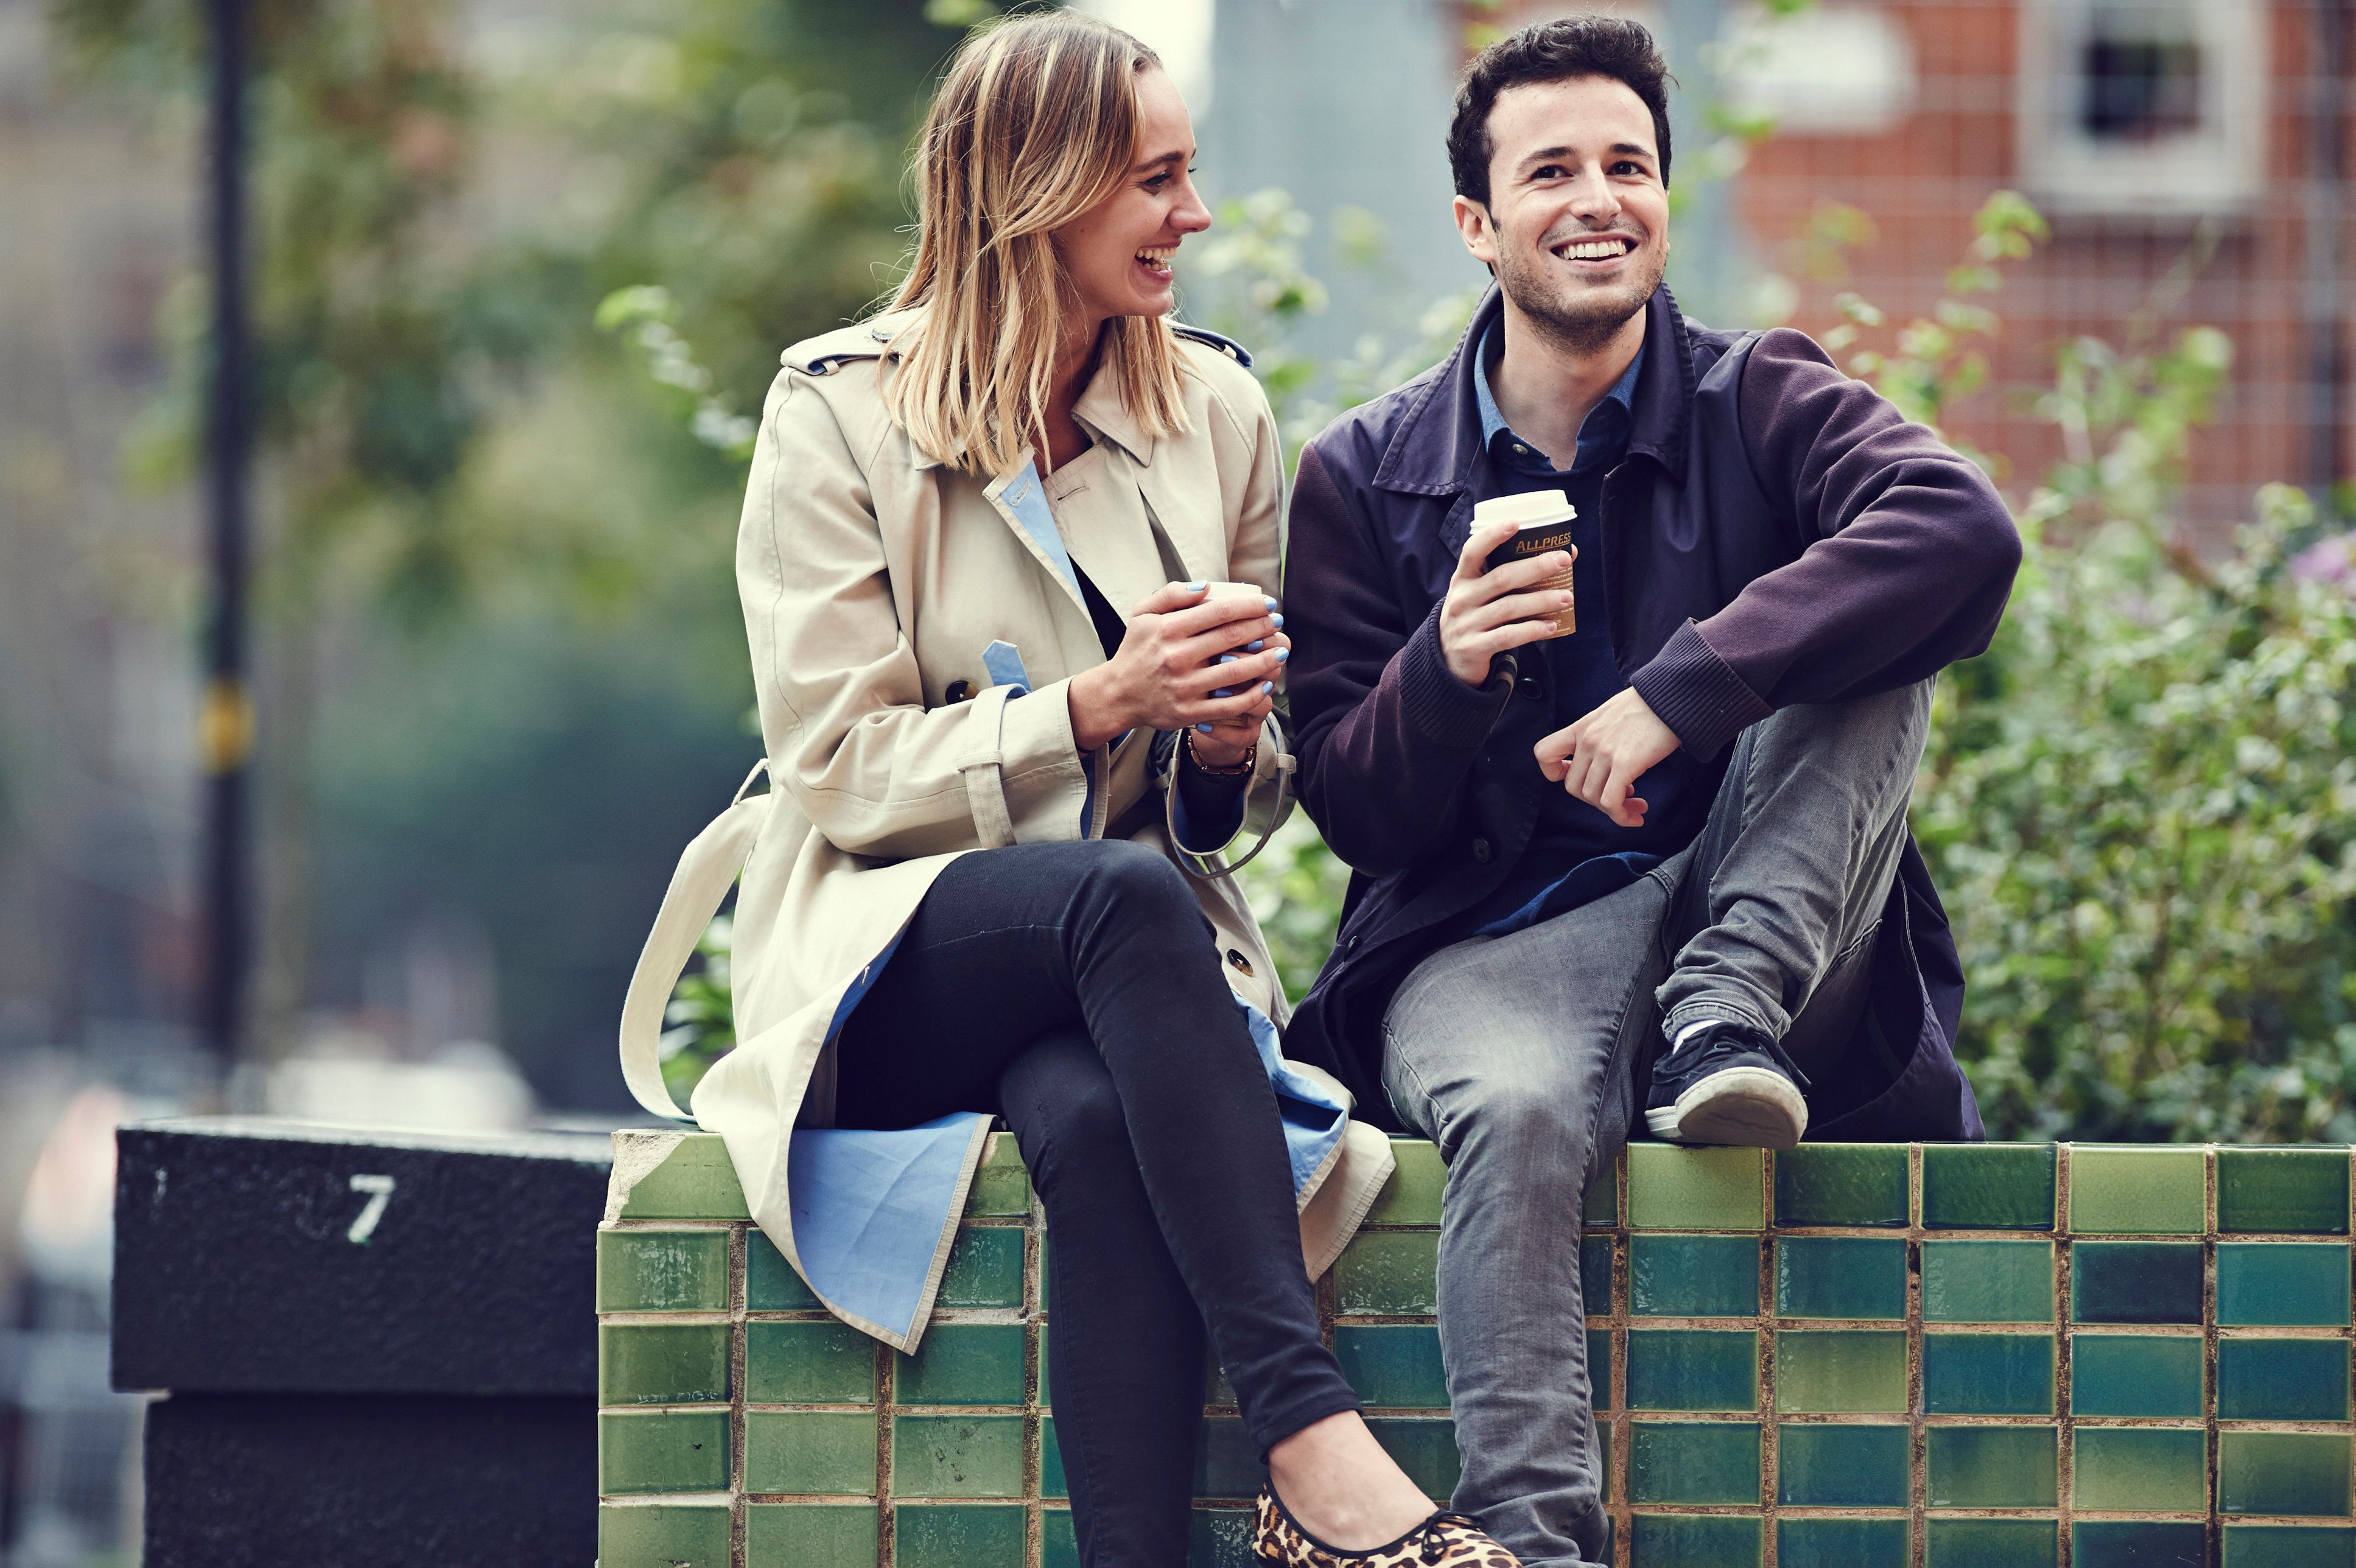 8 Things That Will Help You Get More Dates Via Online